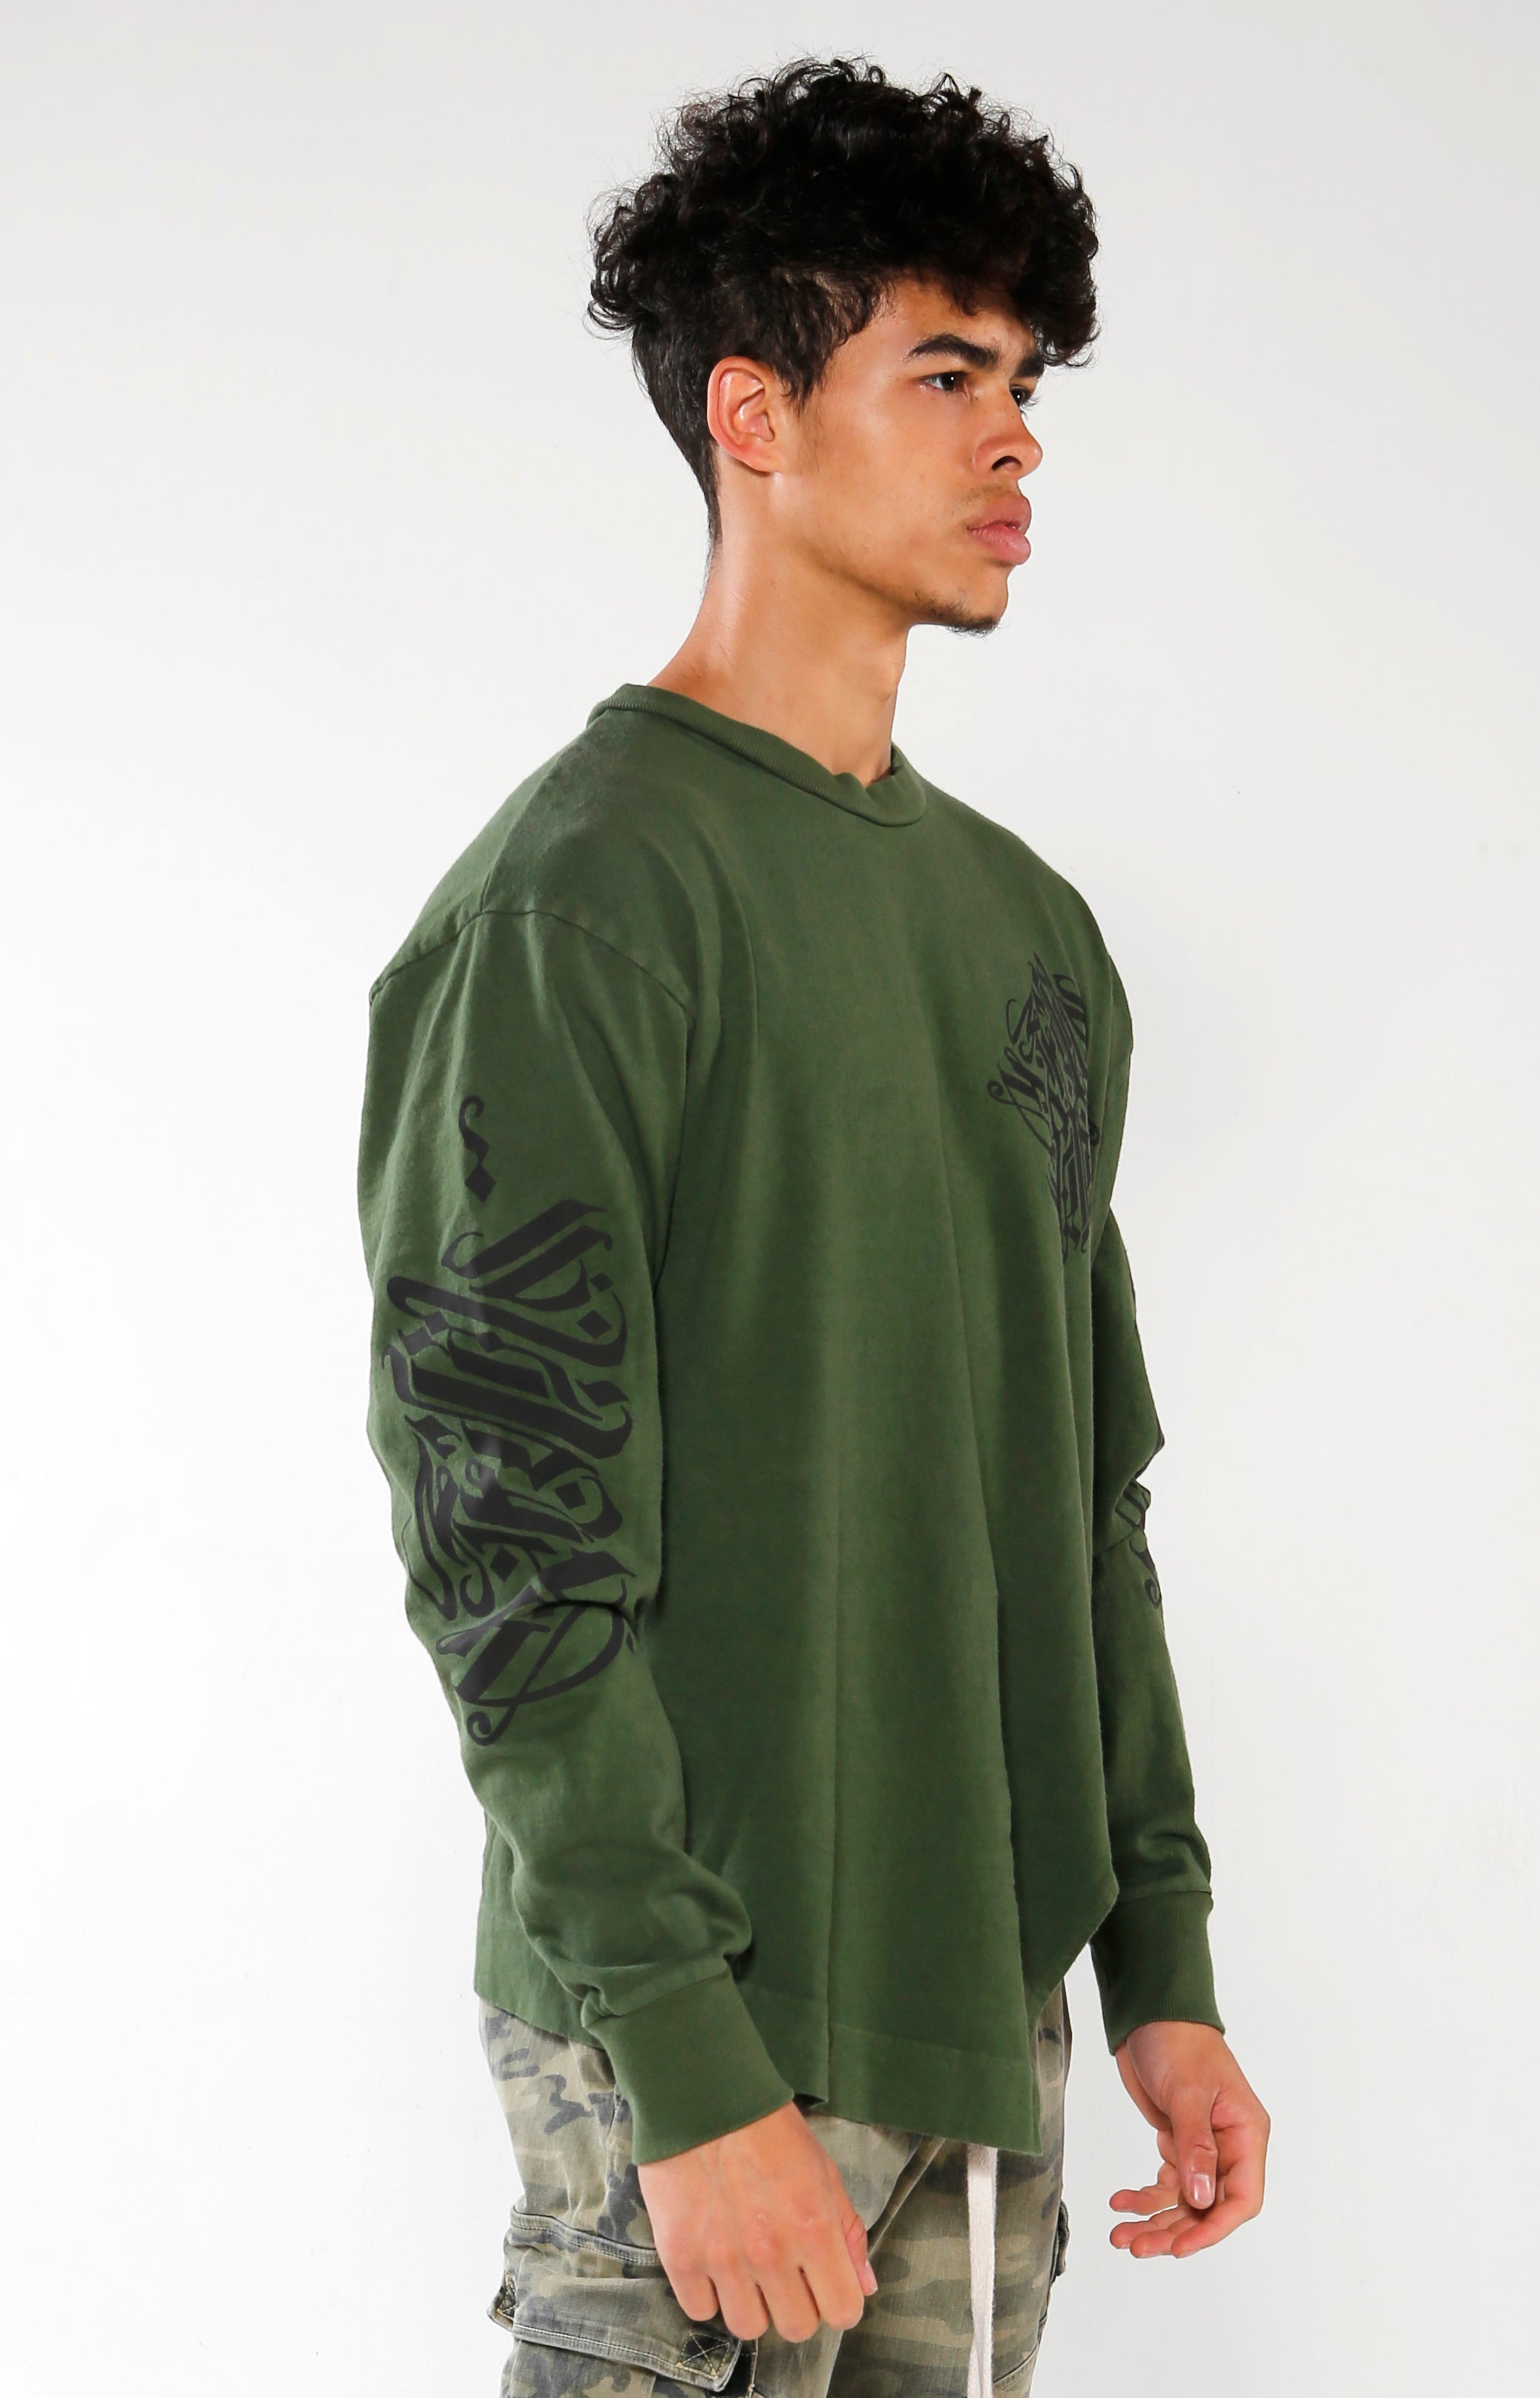 Men's Olive Long Sleeve Calligraffiti Top | Golden Aesthetics - Golden Aesthetics